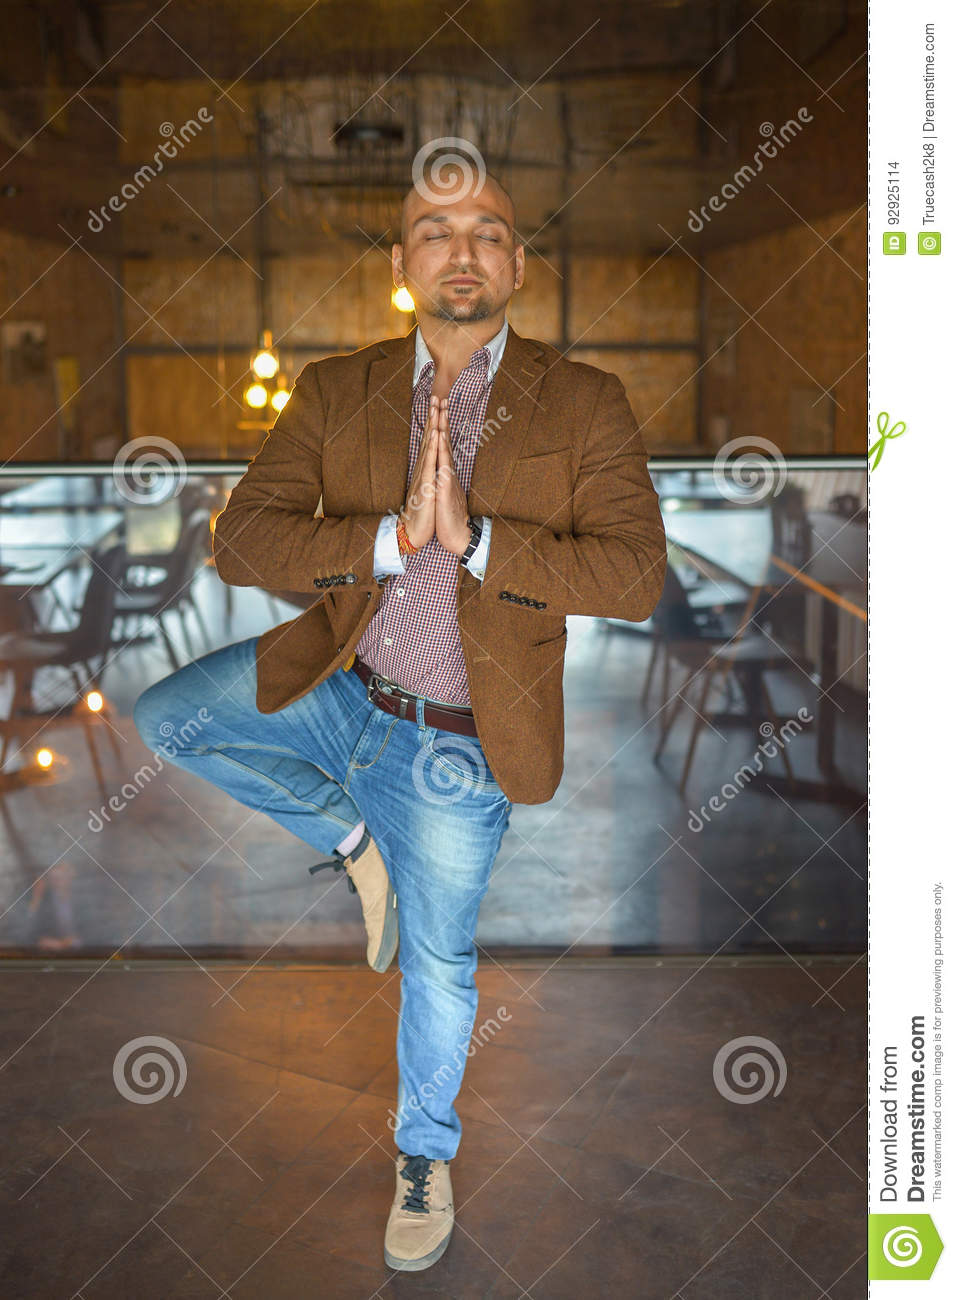 Handsome indian businessman weared in suit performing yoga or asana to relax, eyes closed